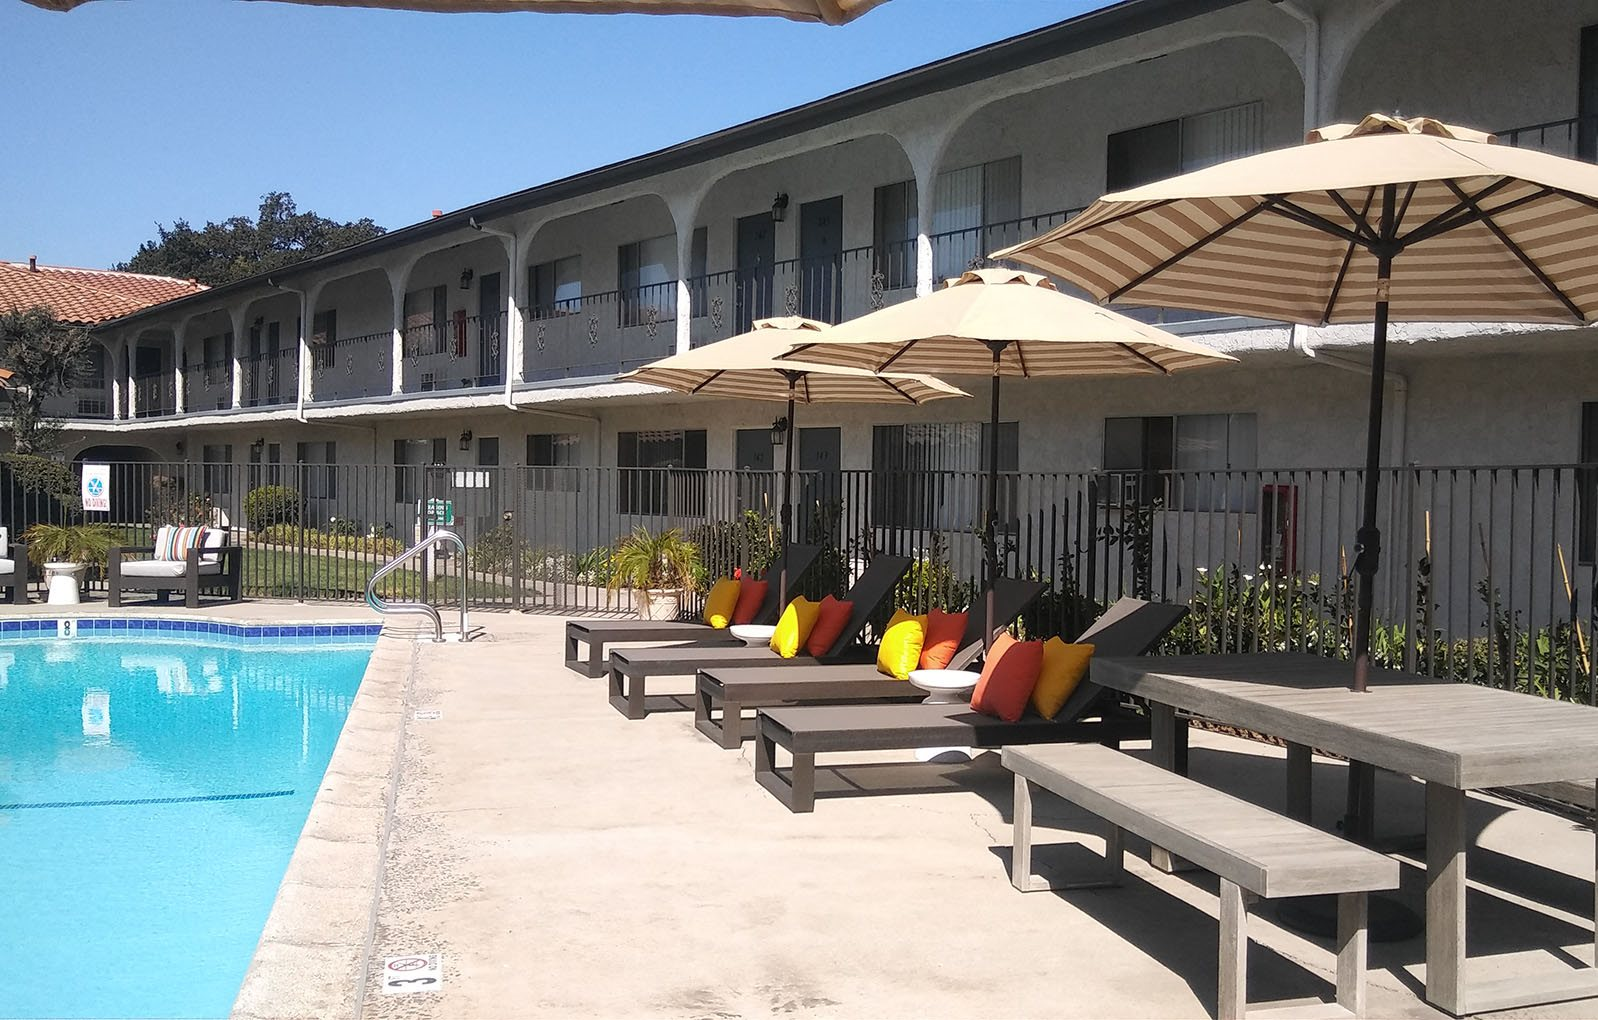 Pool view with Apts Buildings Villa Tramonti Apartment Homes | San Gabriel CA